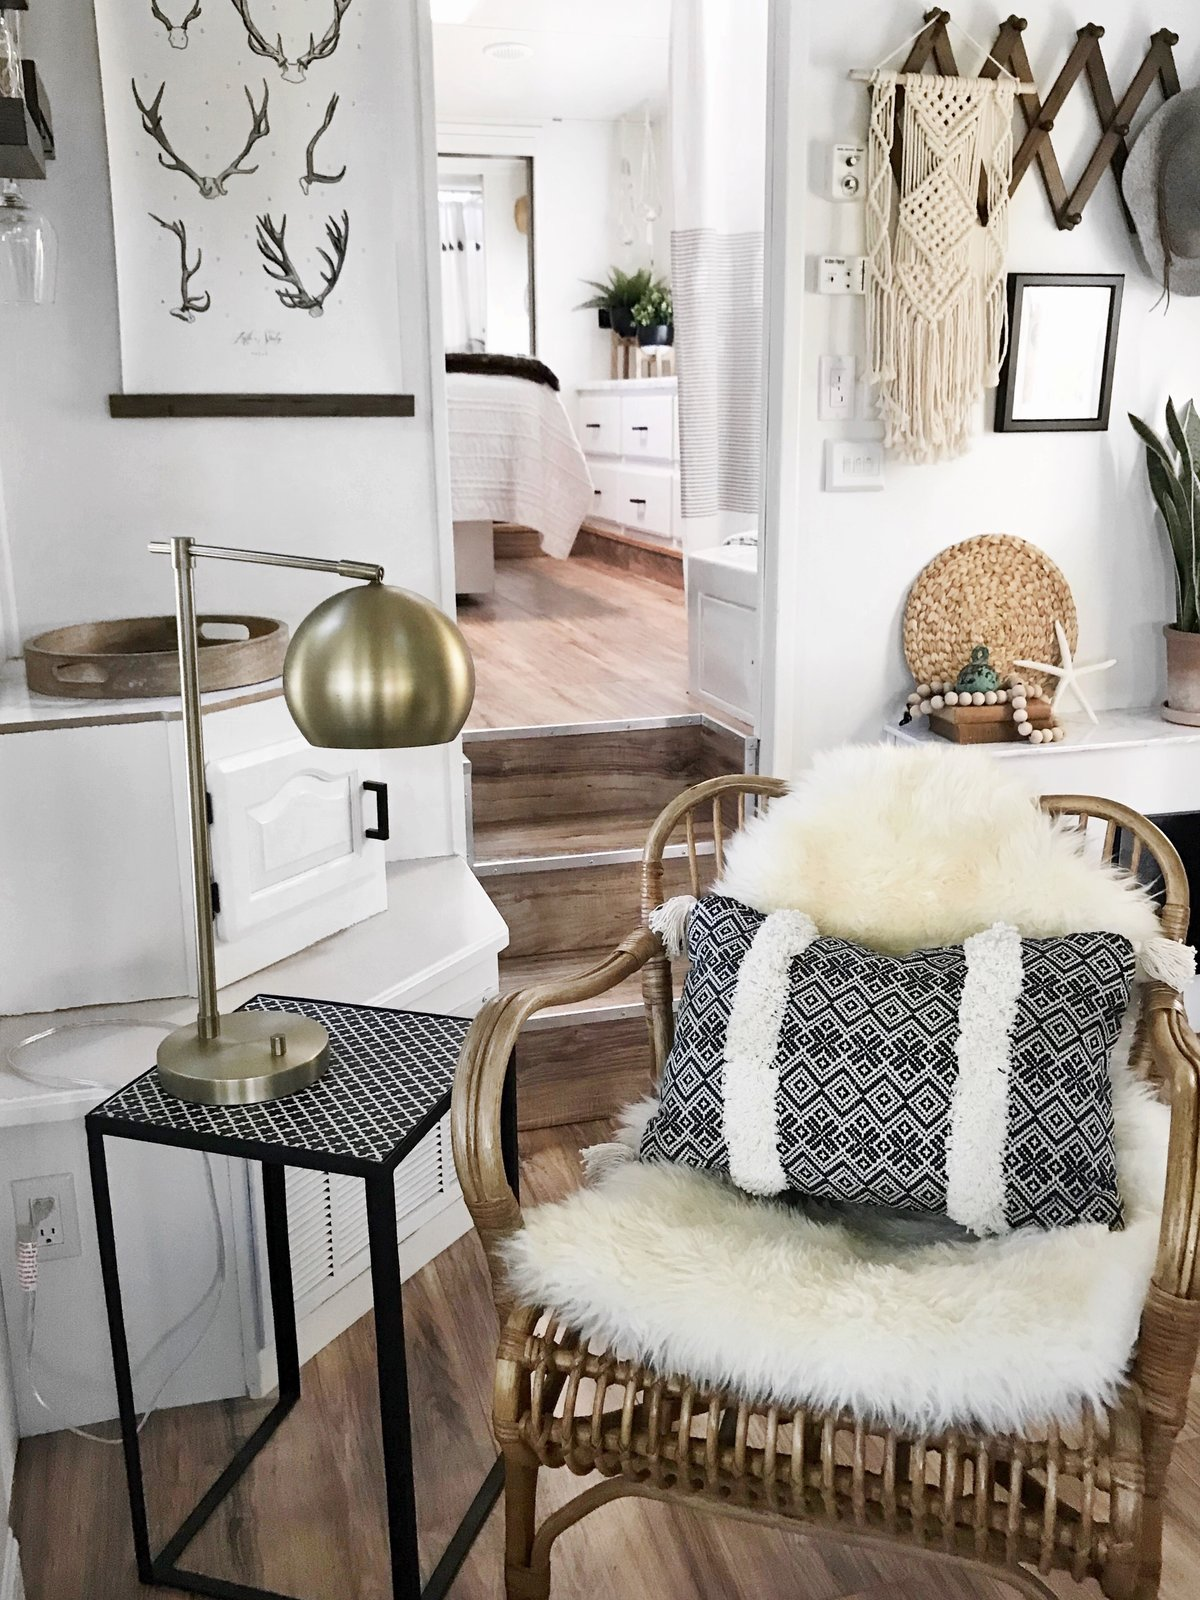 Living Room, Chair, Table Lighting, Medium Hardwood Floor, Storage, and End Tables A sheepskin rug, a weave hanging on the wall, and vibrant fabrics add much personality to the small mobile home.  Photo 5 of 16 in Hit the Road With This Chic Camper on Sale For $28K